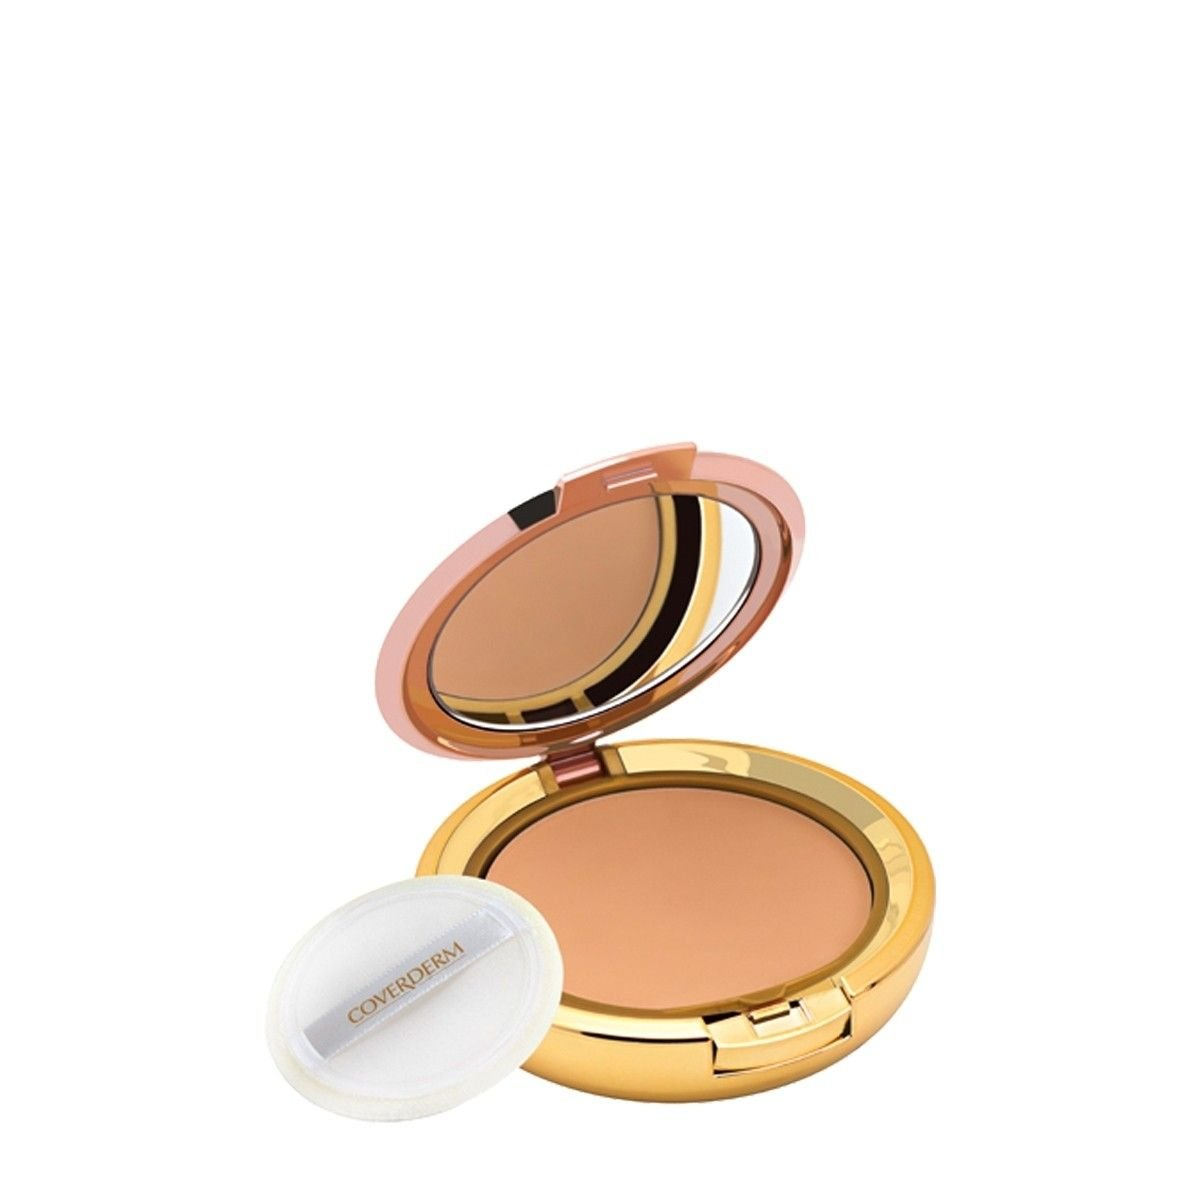 Afbeelding van Coverderm Compact Powder Color Normal 1 Poeder Make up